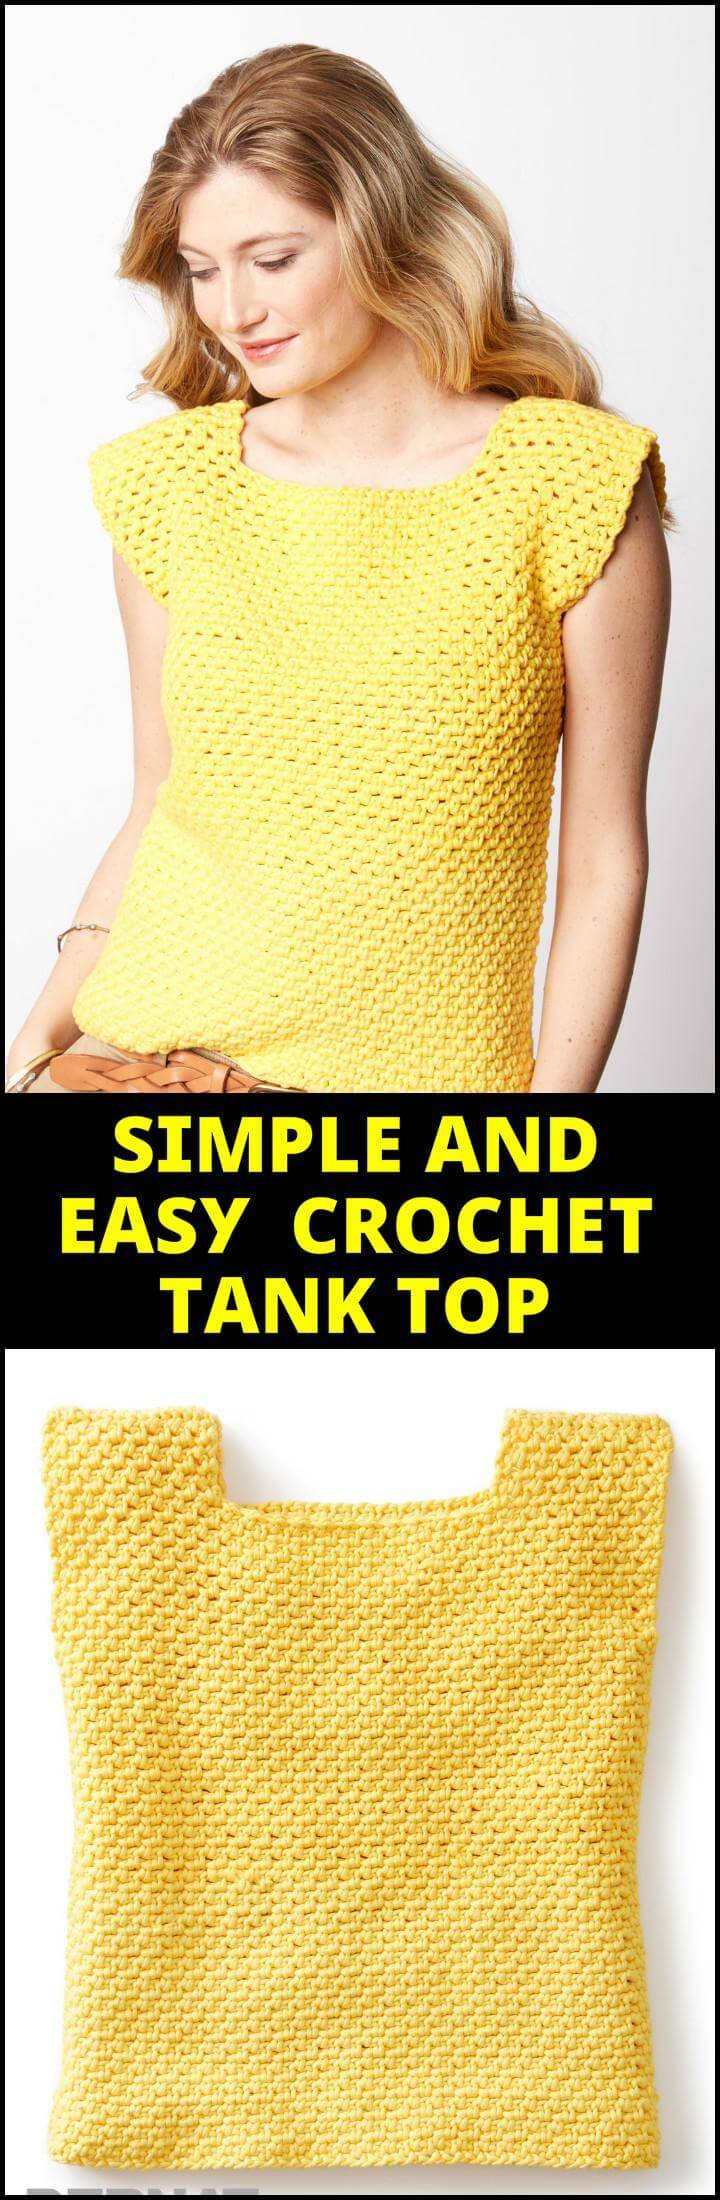 Simple and Easy Crochet Tank Top